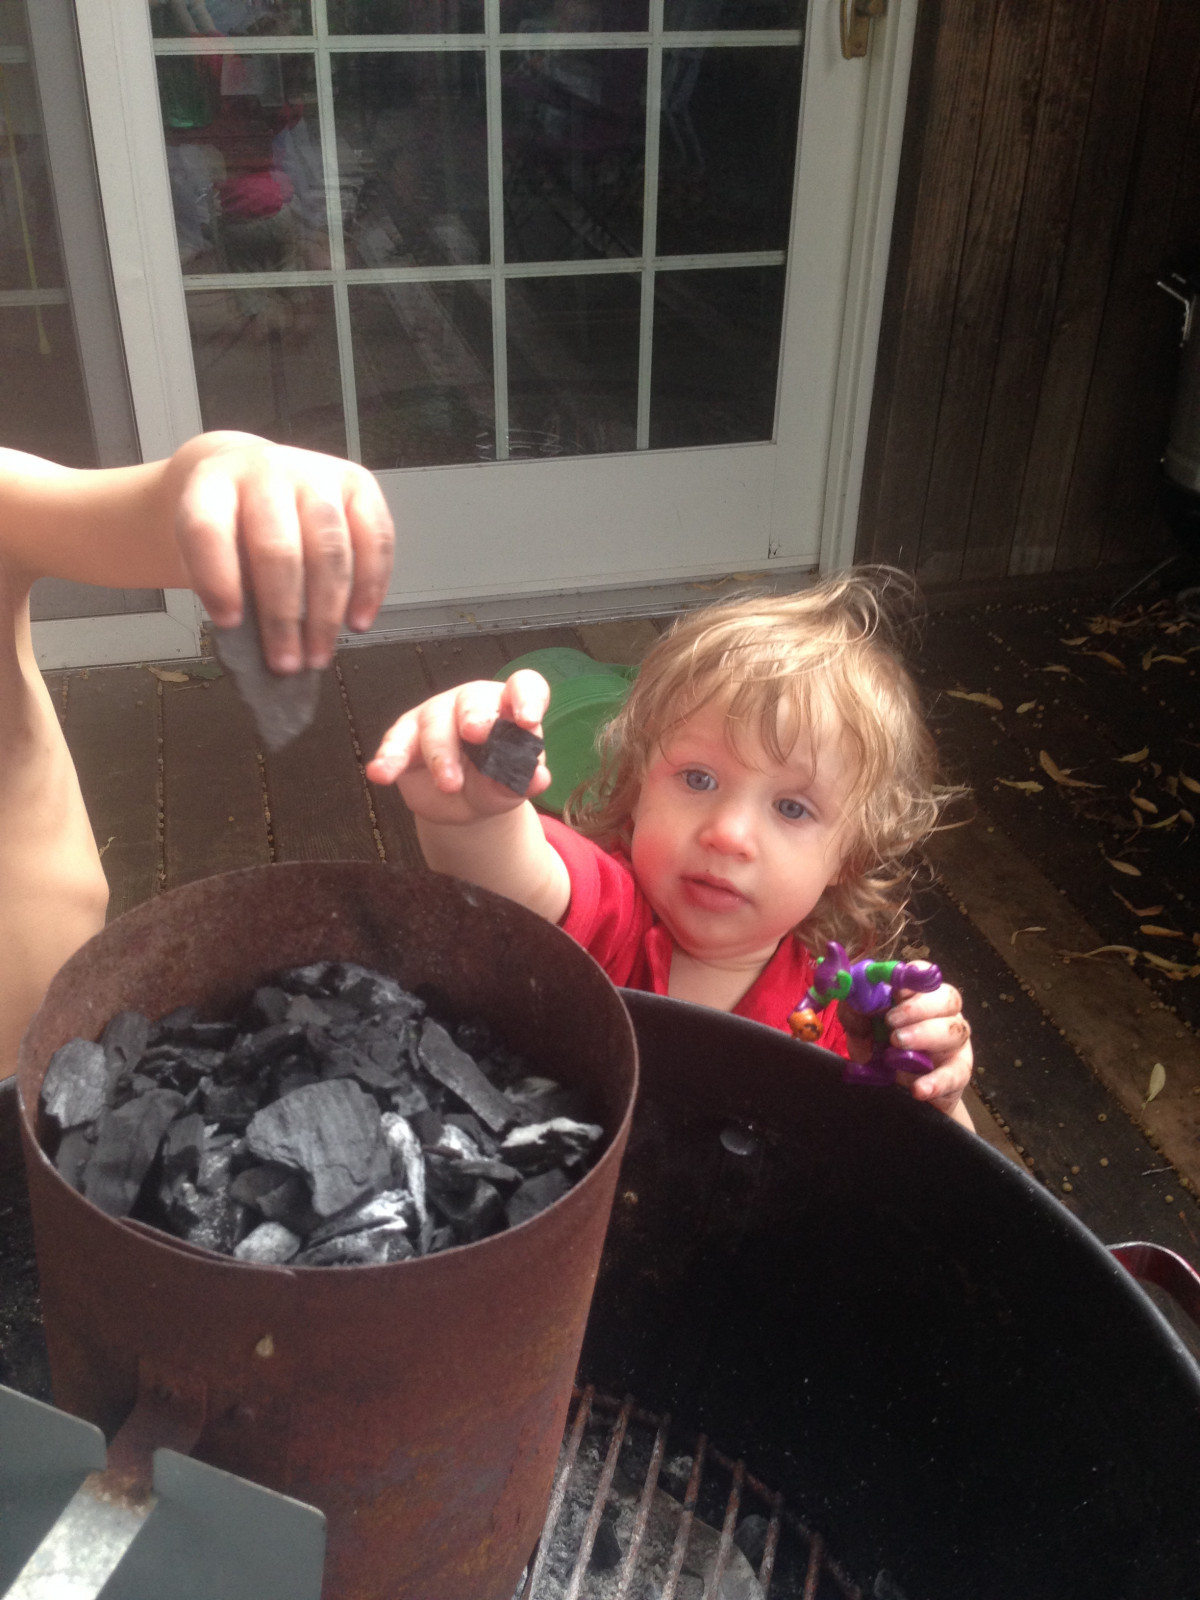 A little girl and a little boy putting charcoal pieces in a chimney starter